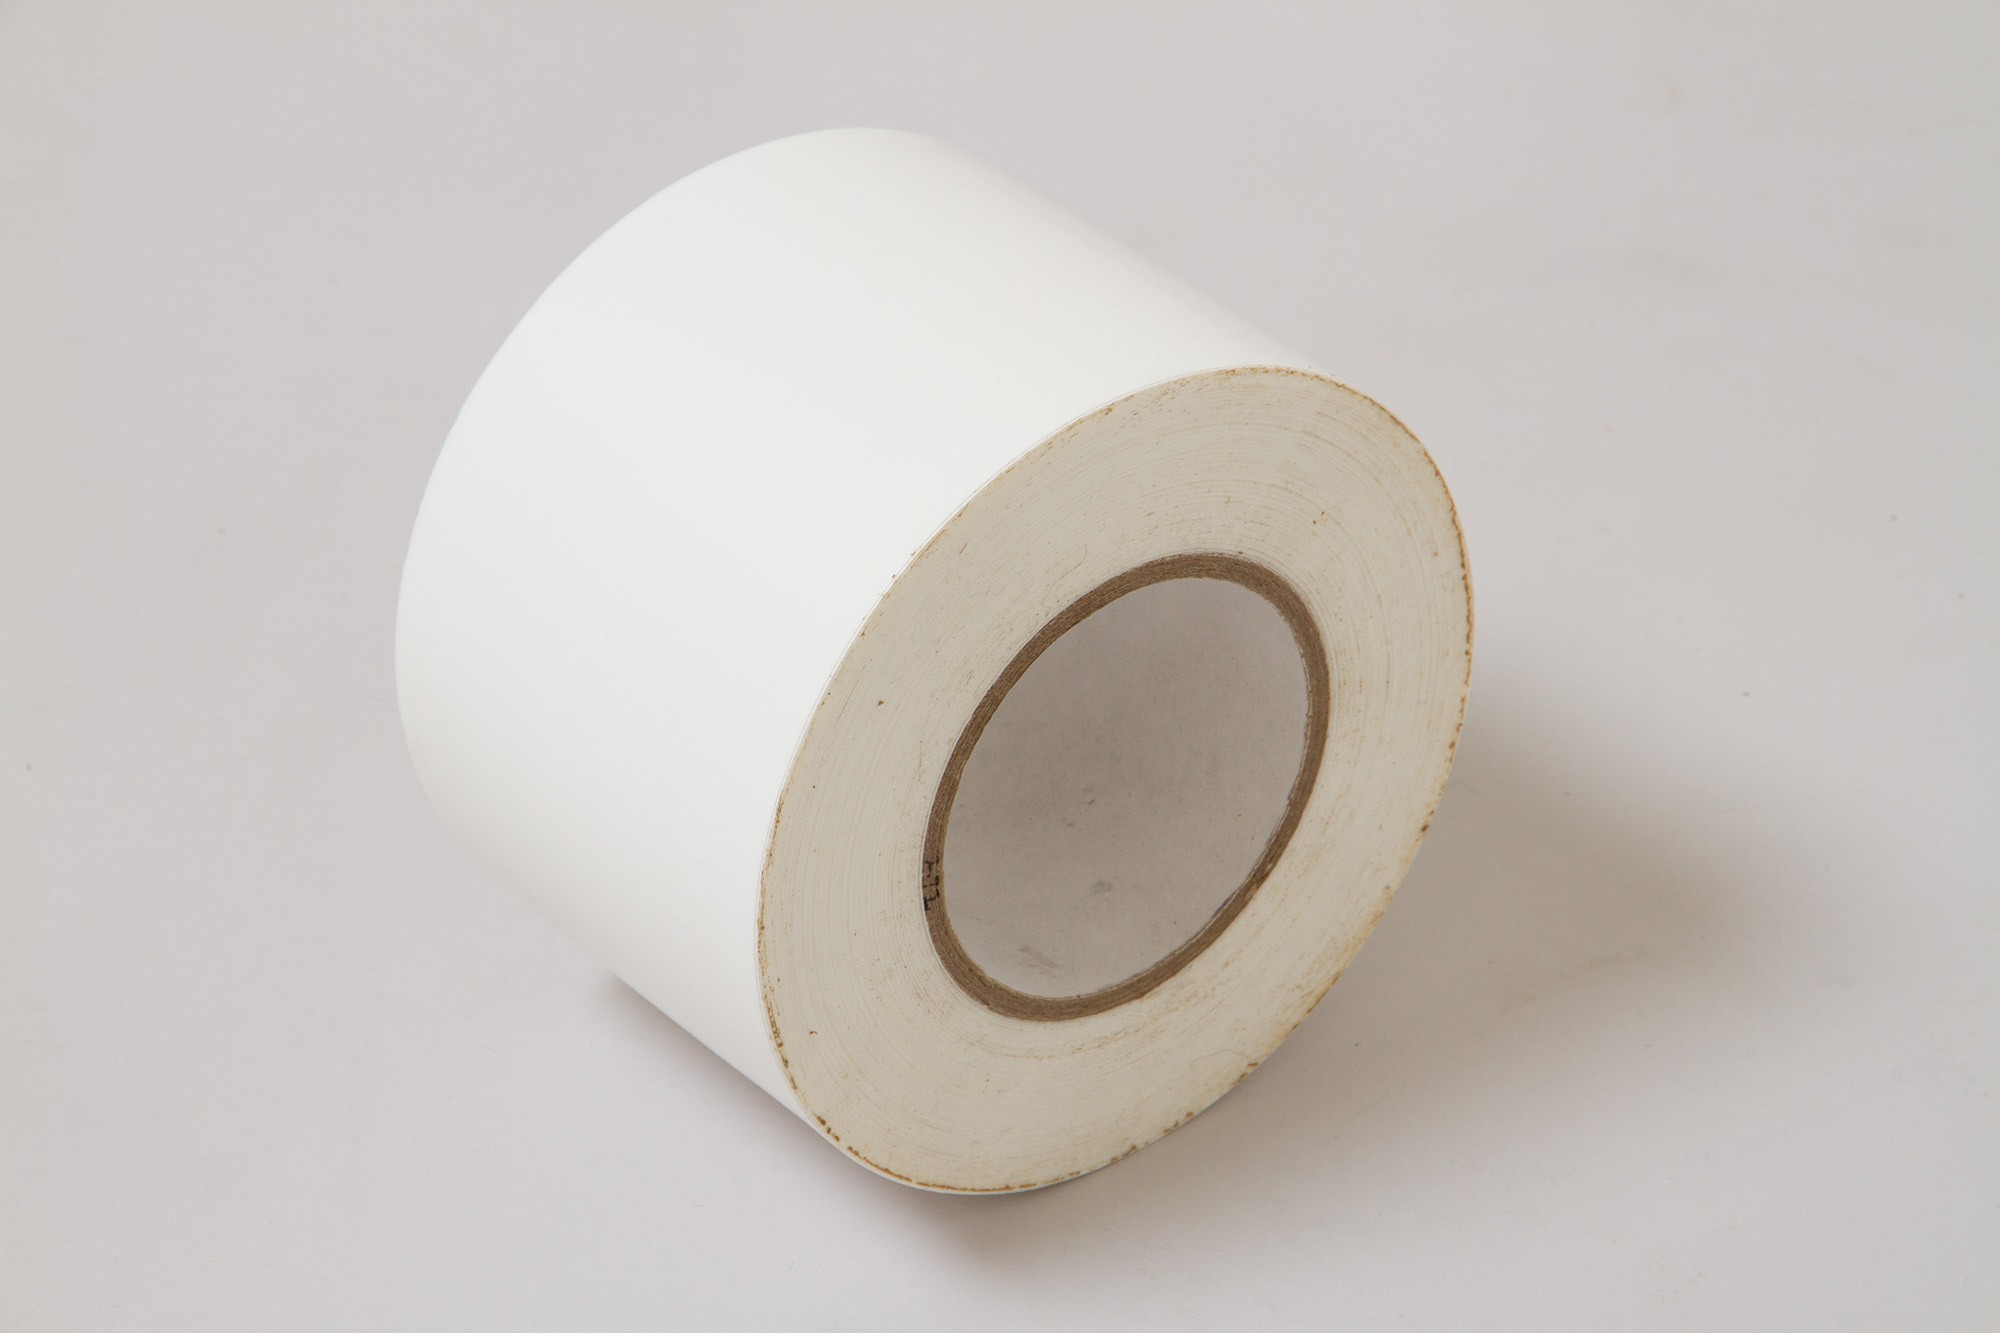 White Bond Tape